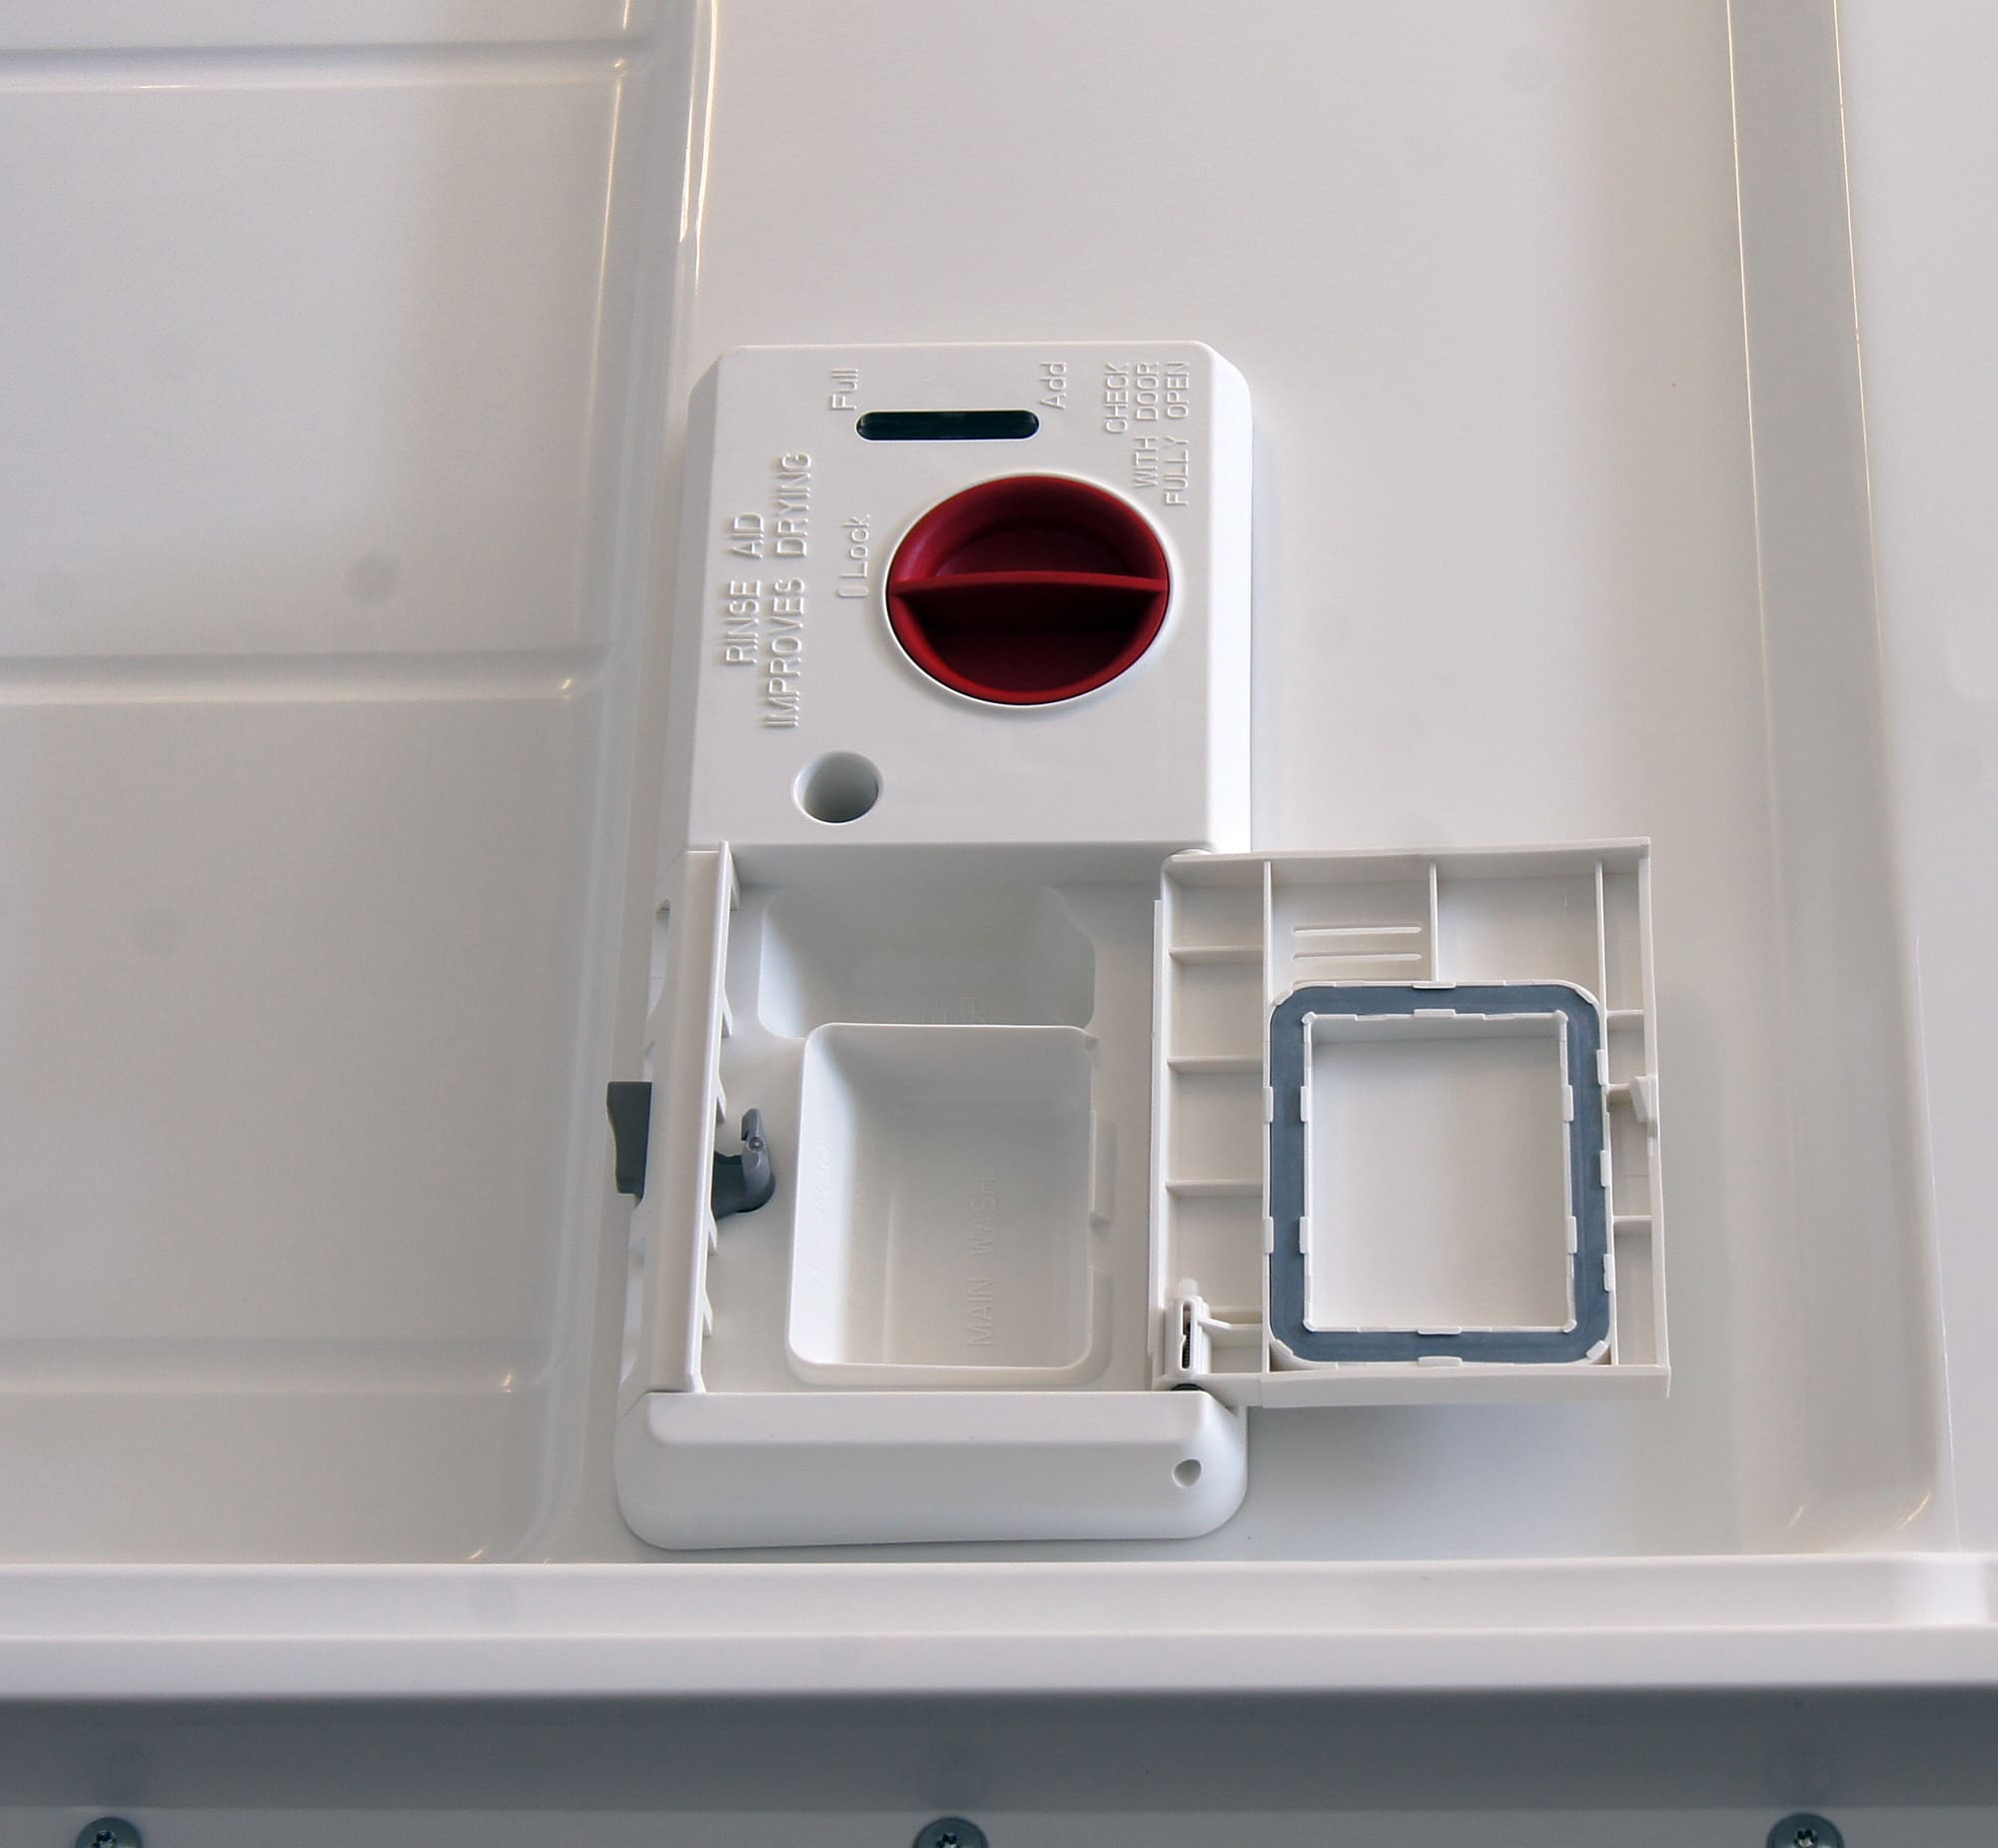 Kenmore 15113 detergent and rinse aid dispenser